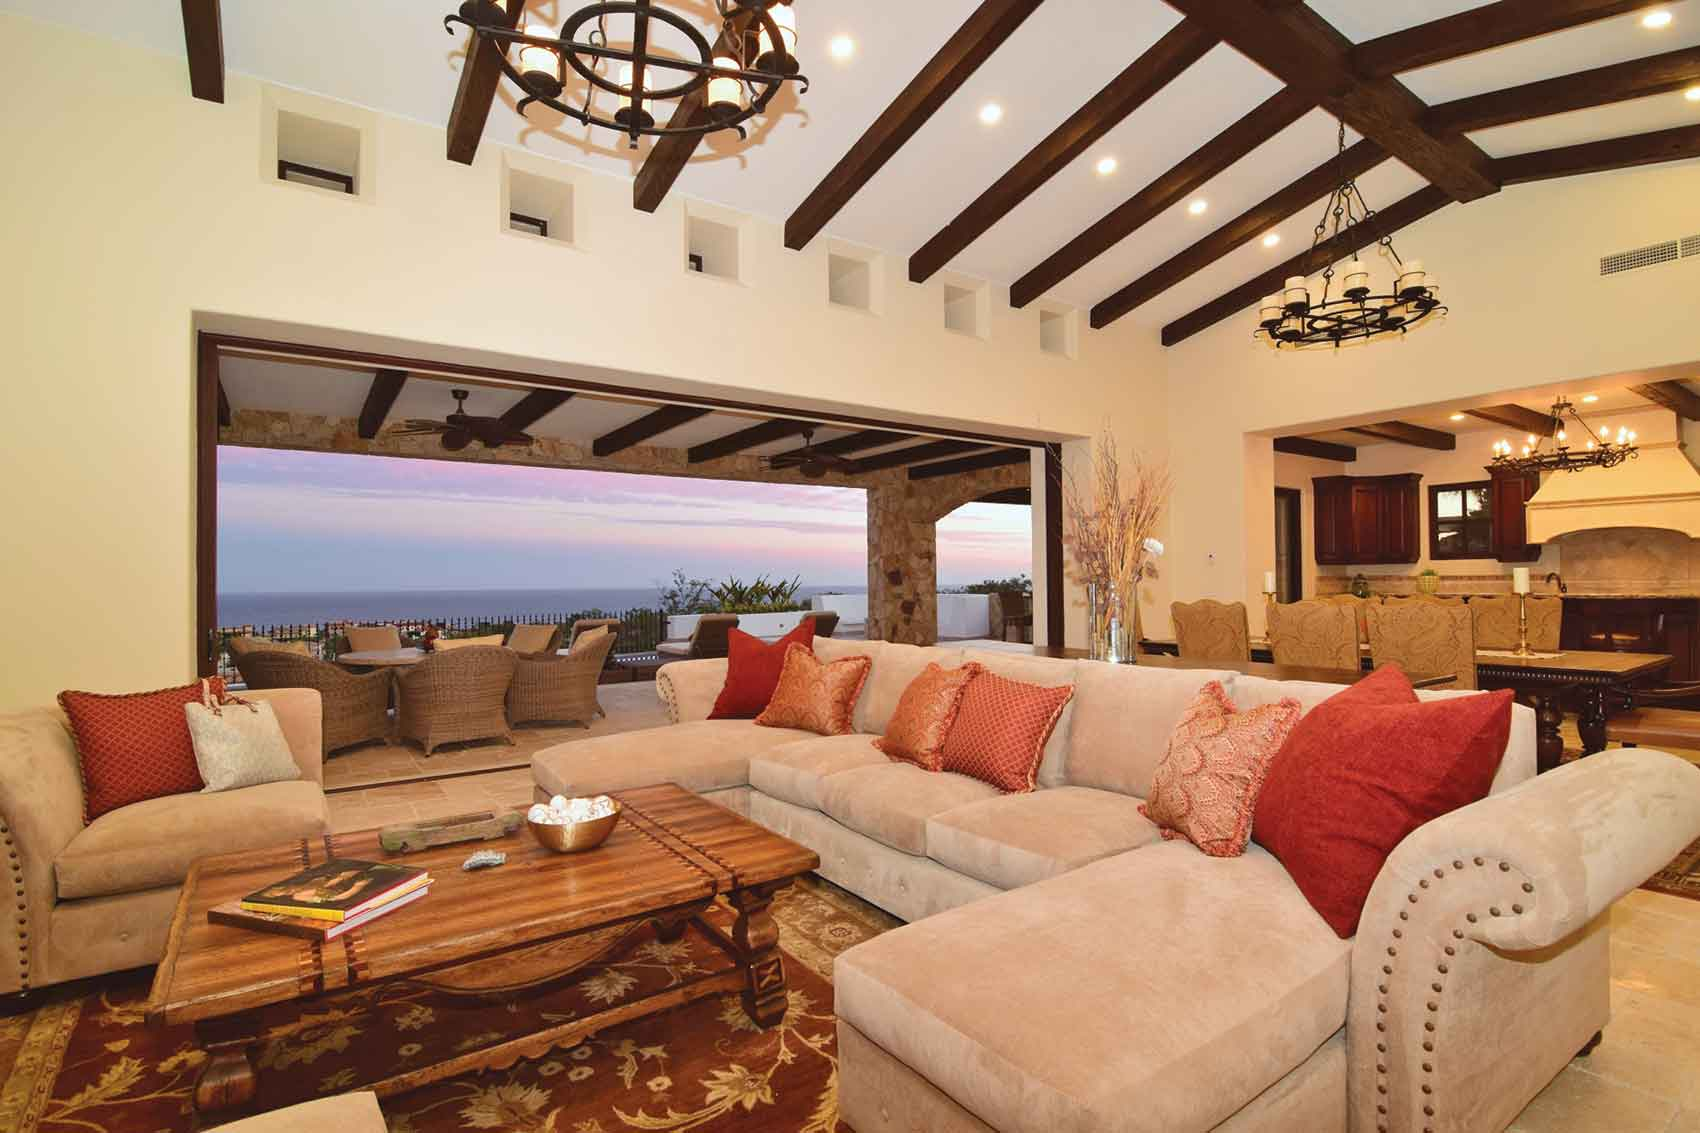 Casa Kay in San Juan del Cabo, Mexico,  welcomes the outdoors inside, and welcomes the sun's energy via solar panels.